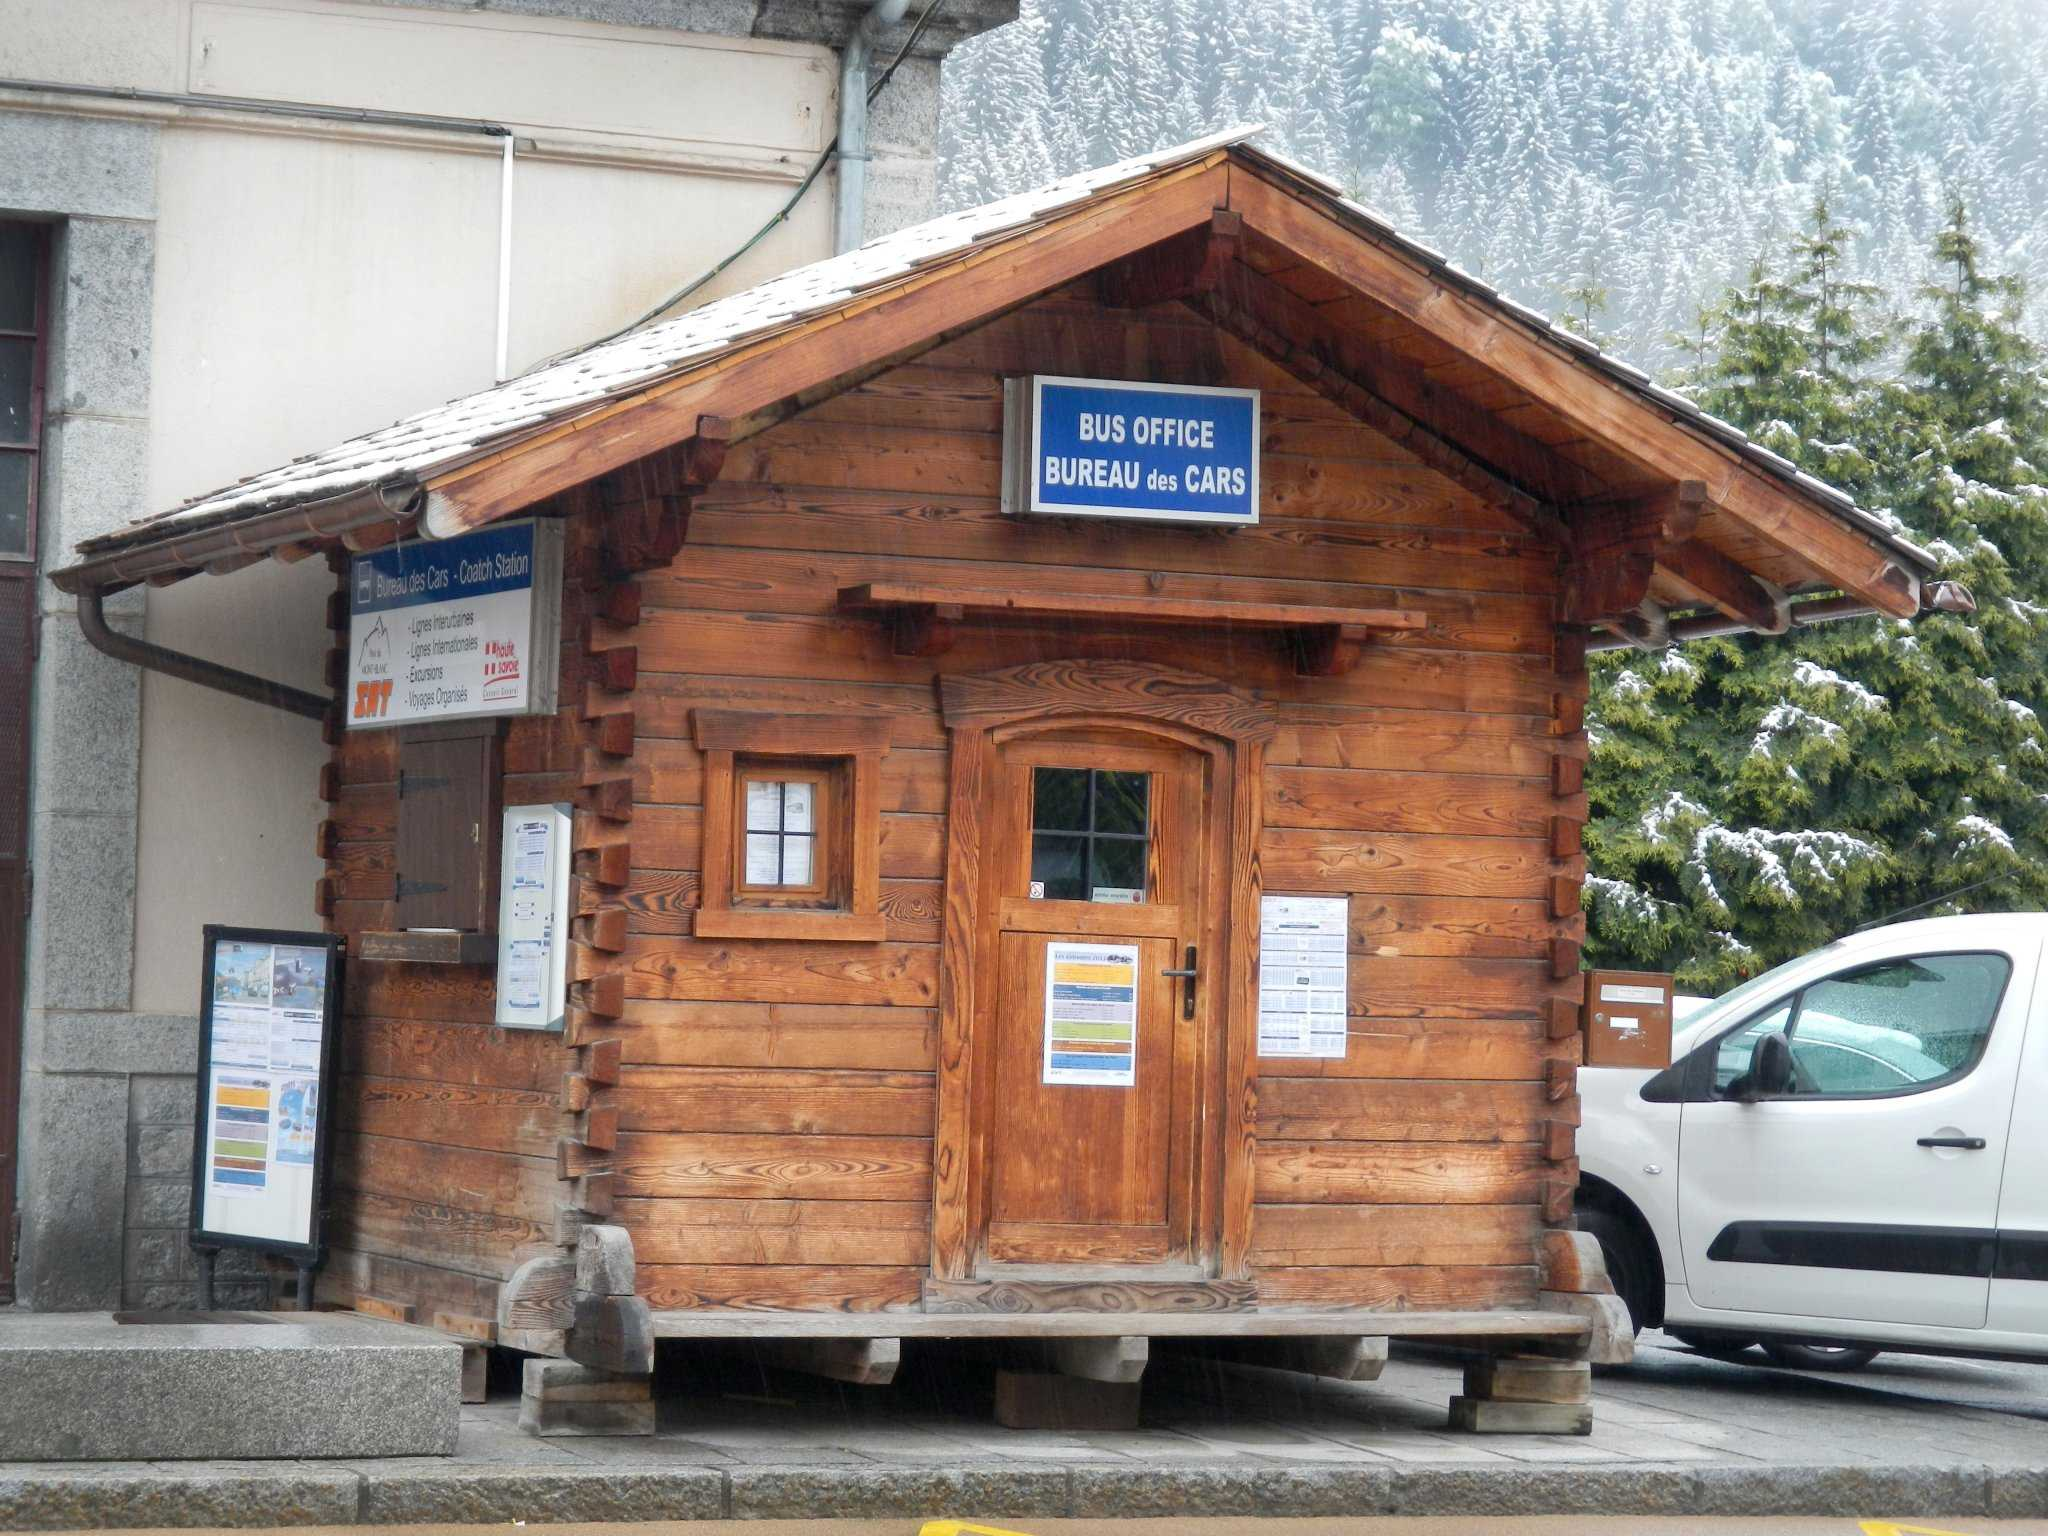 From Geneva to Chamonix by Bus Schedules Prices